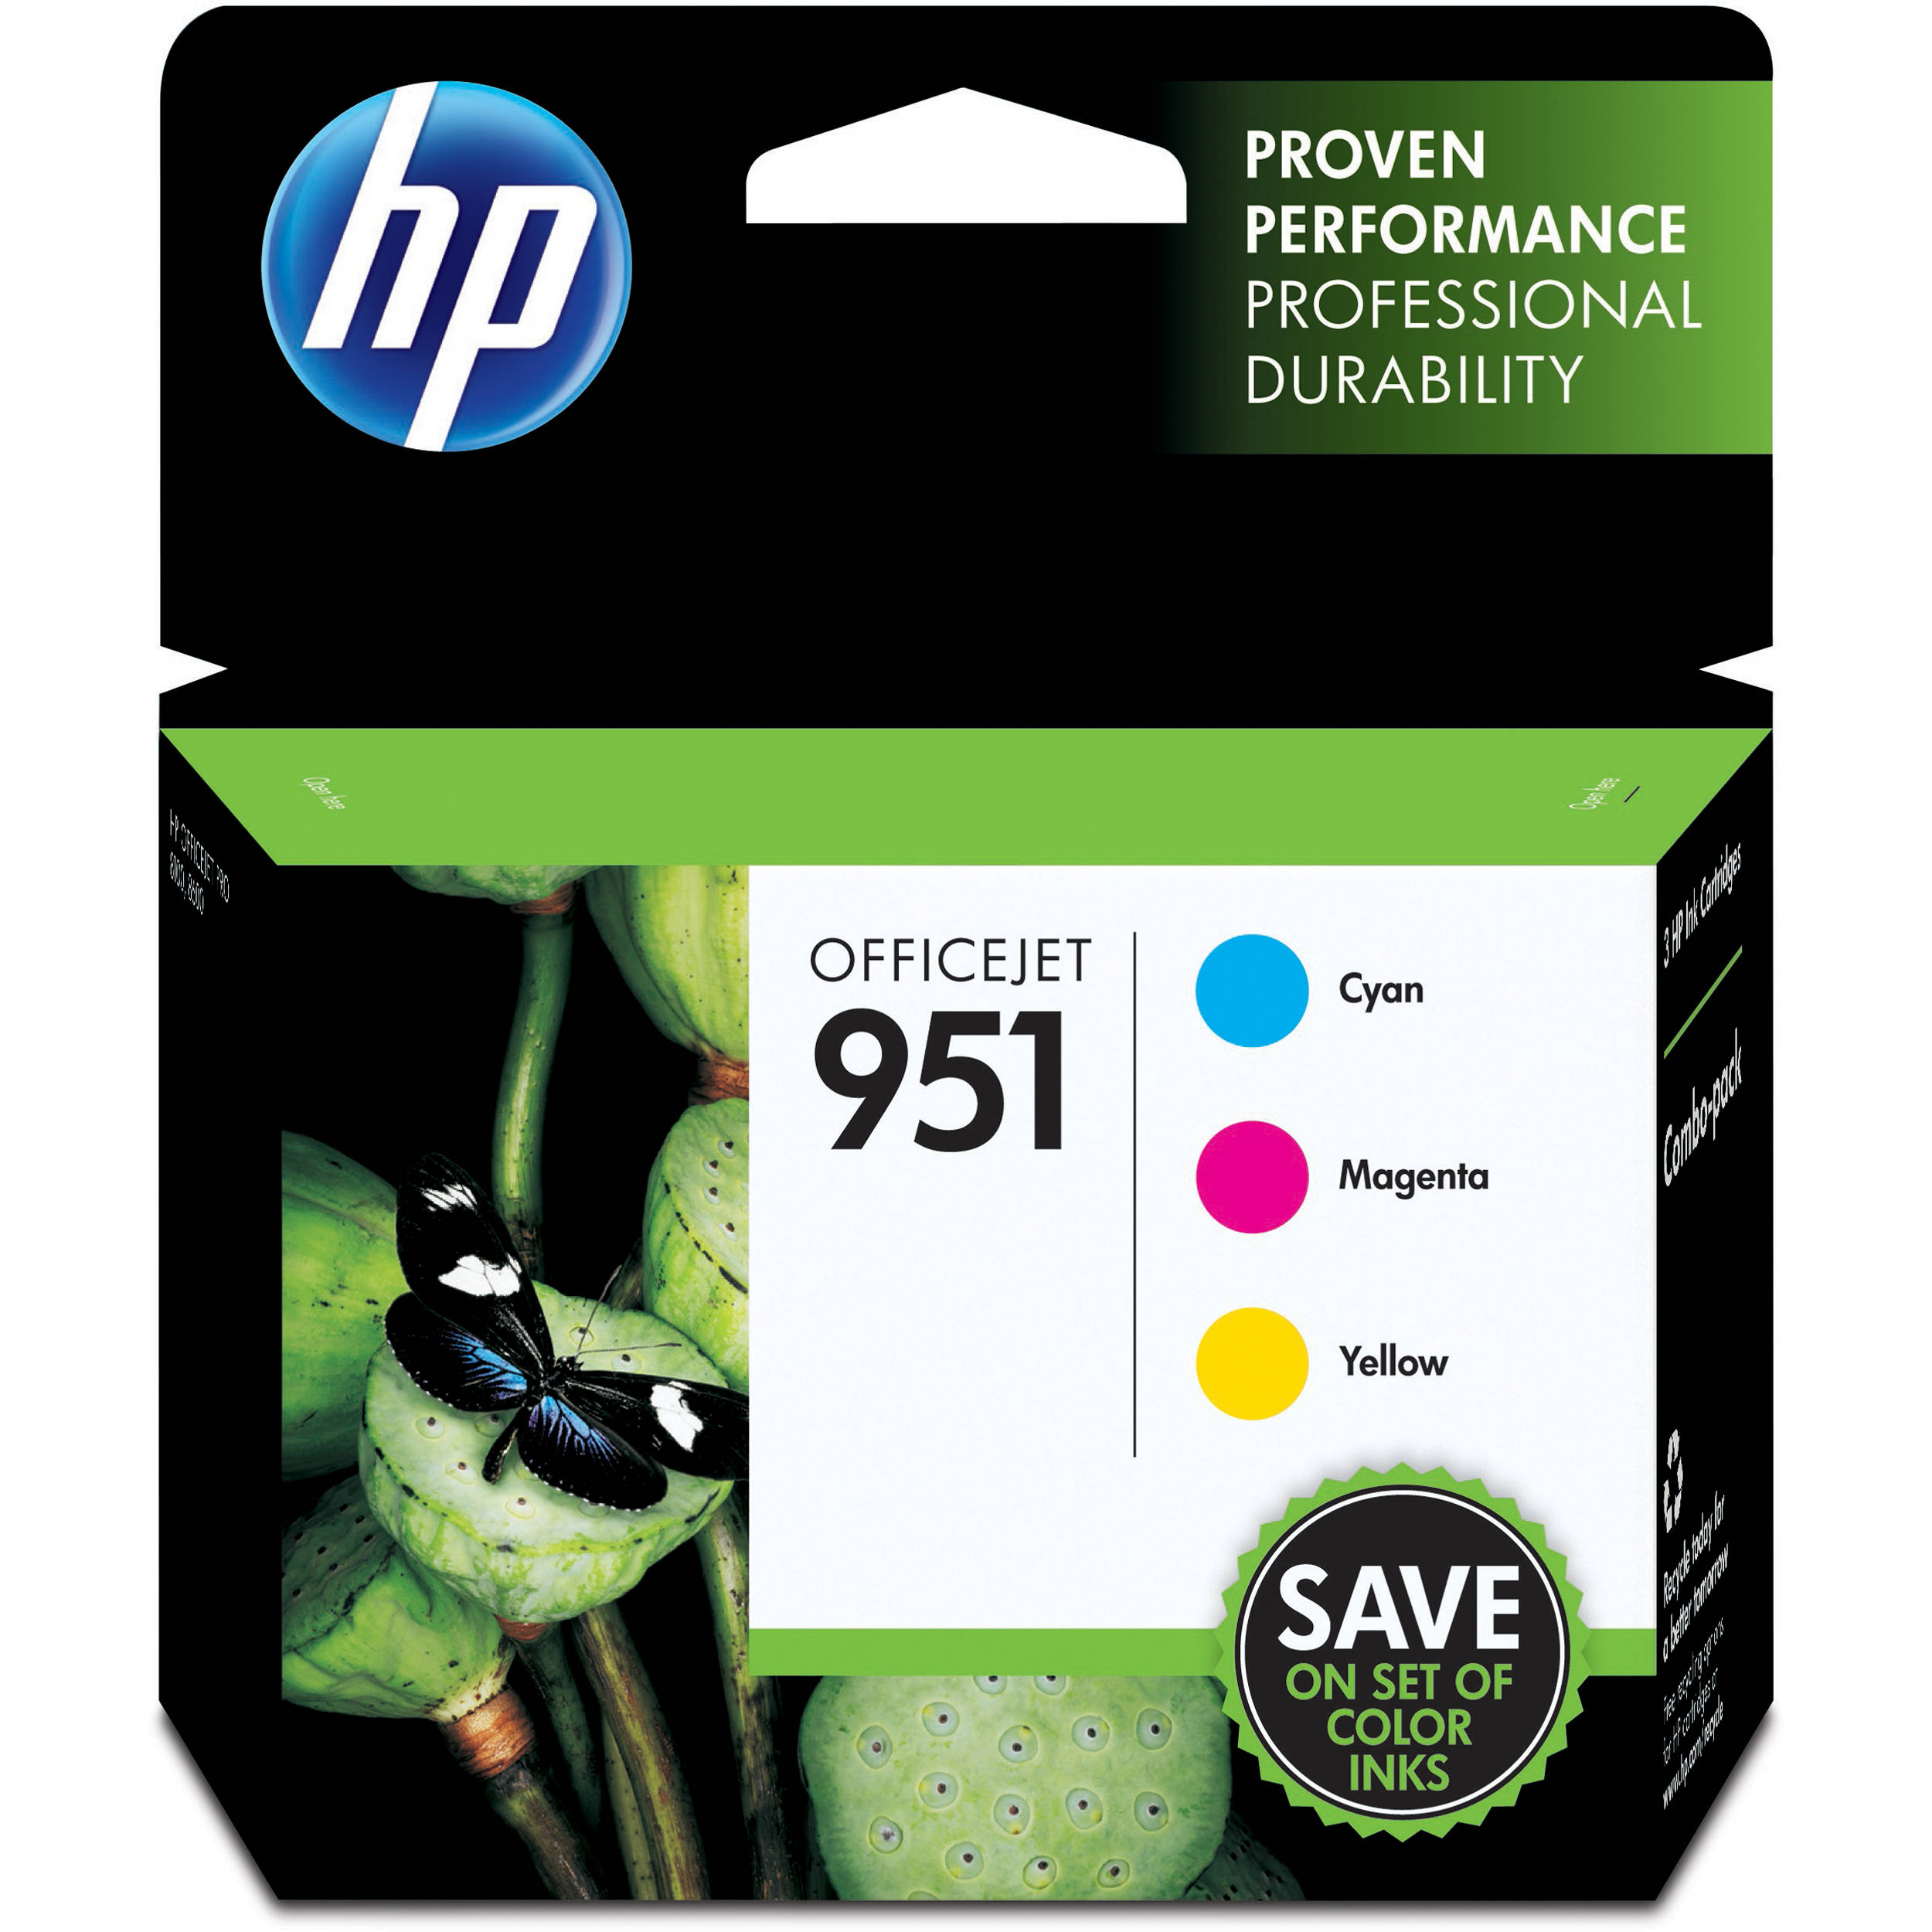 HP 951 Cyan Magenta And Yellow Ink Cartridge Combo Pack